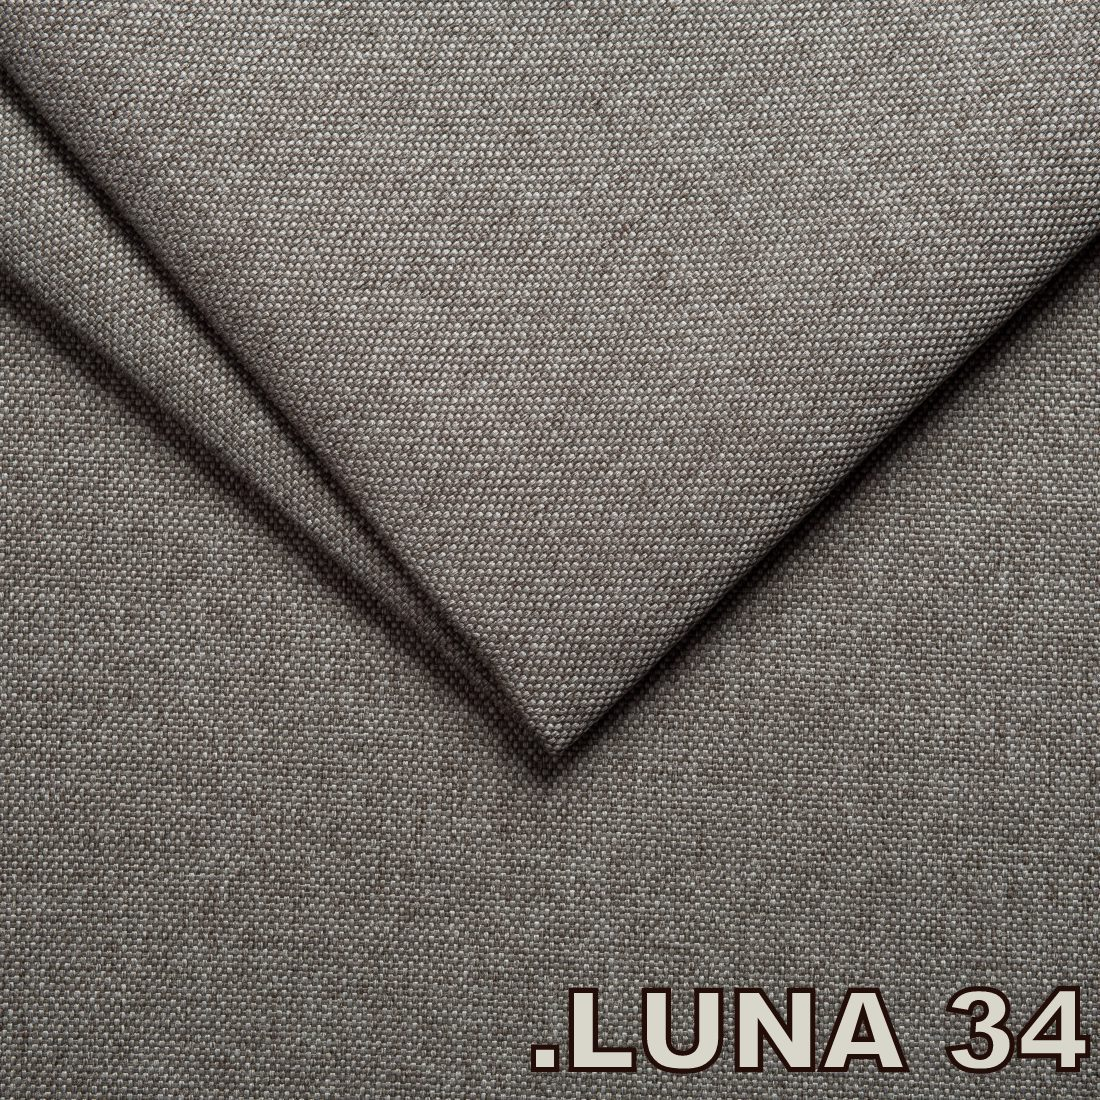 Luna 34 Grey (Tissu Tweed structure fine)